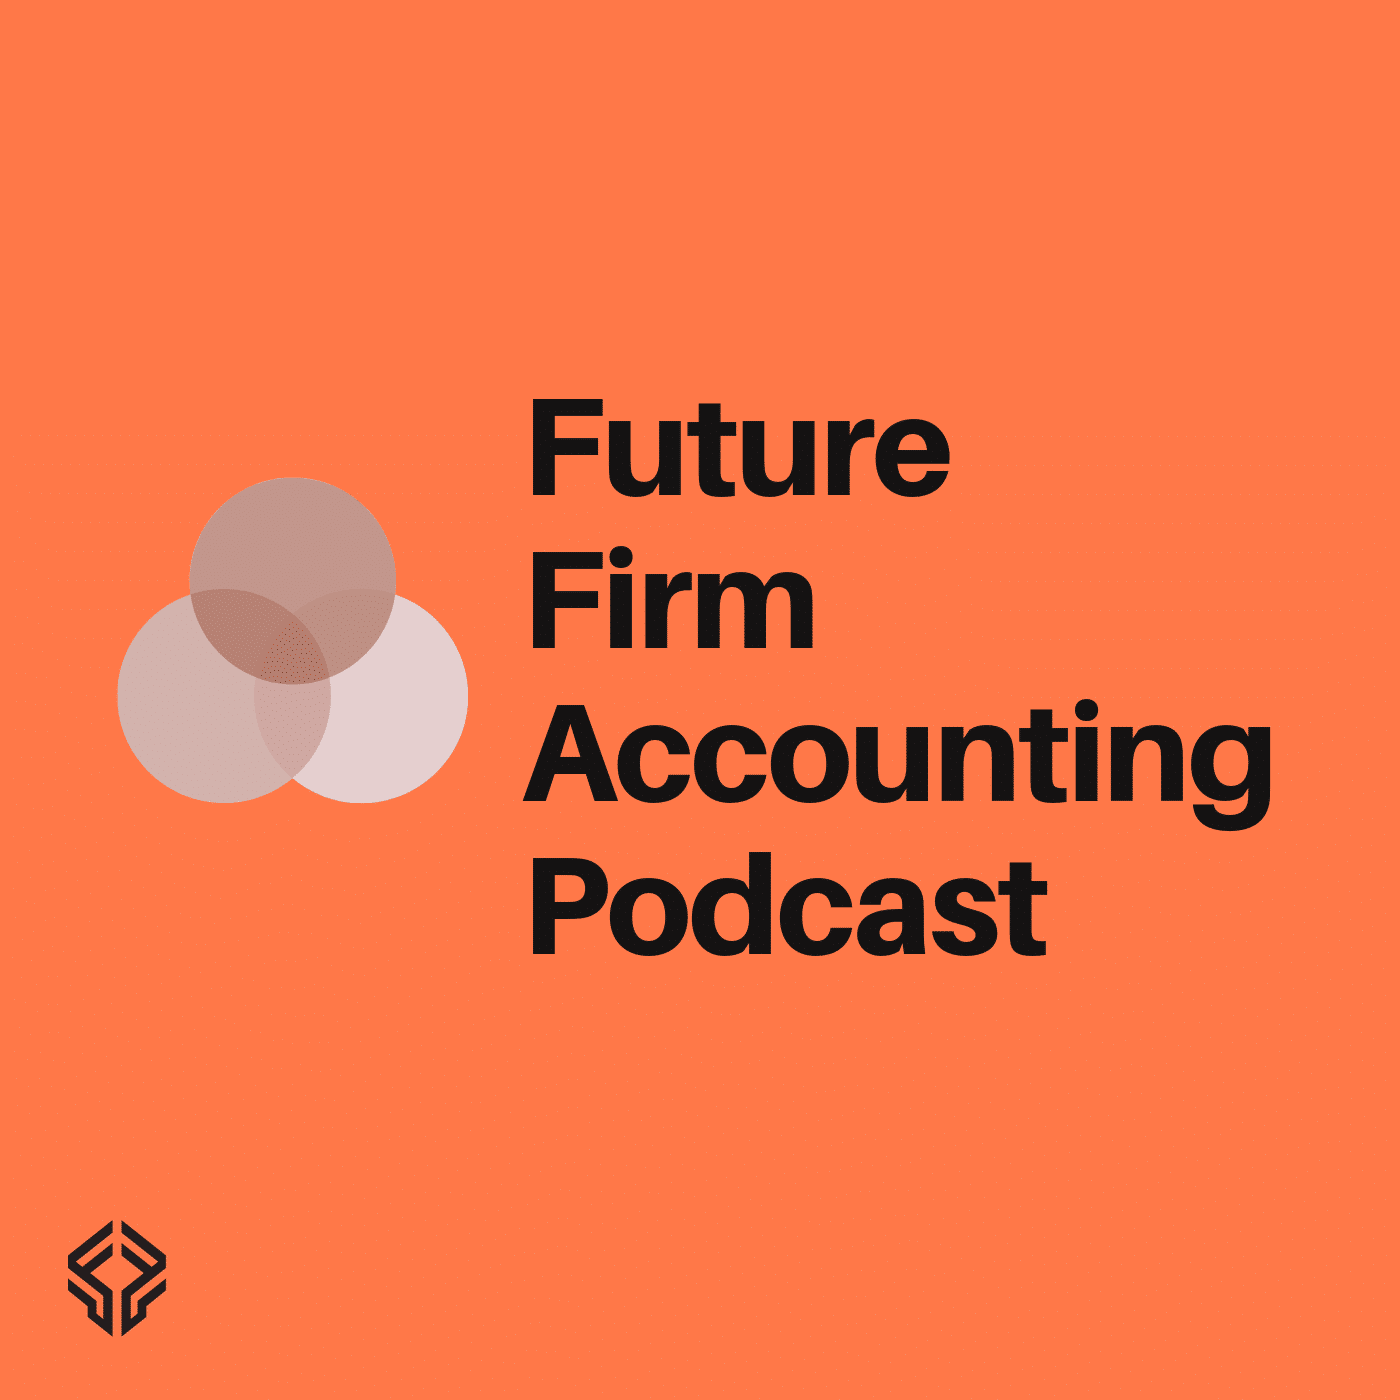 Future Firm Accounting Podcast